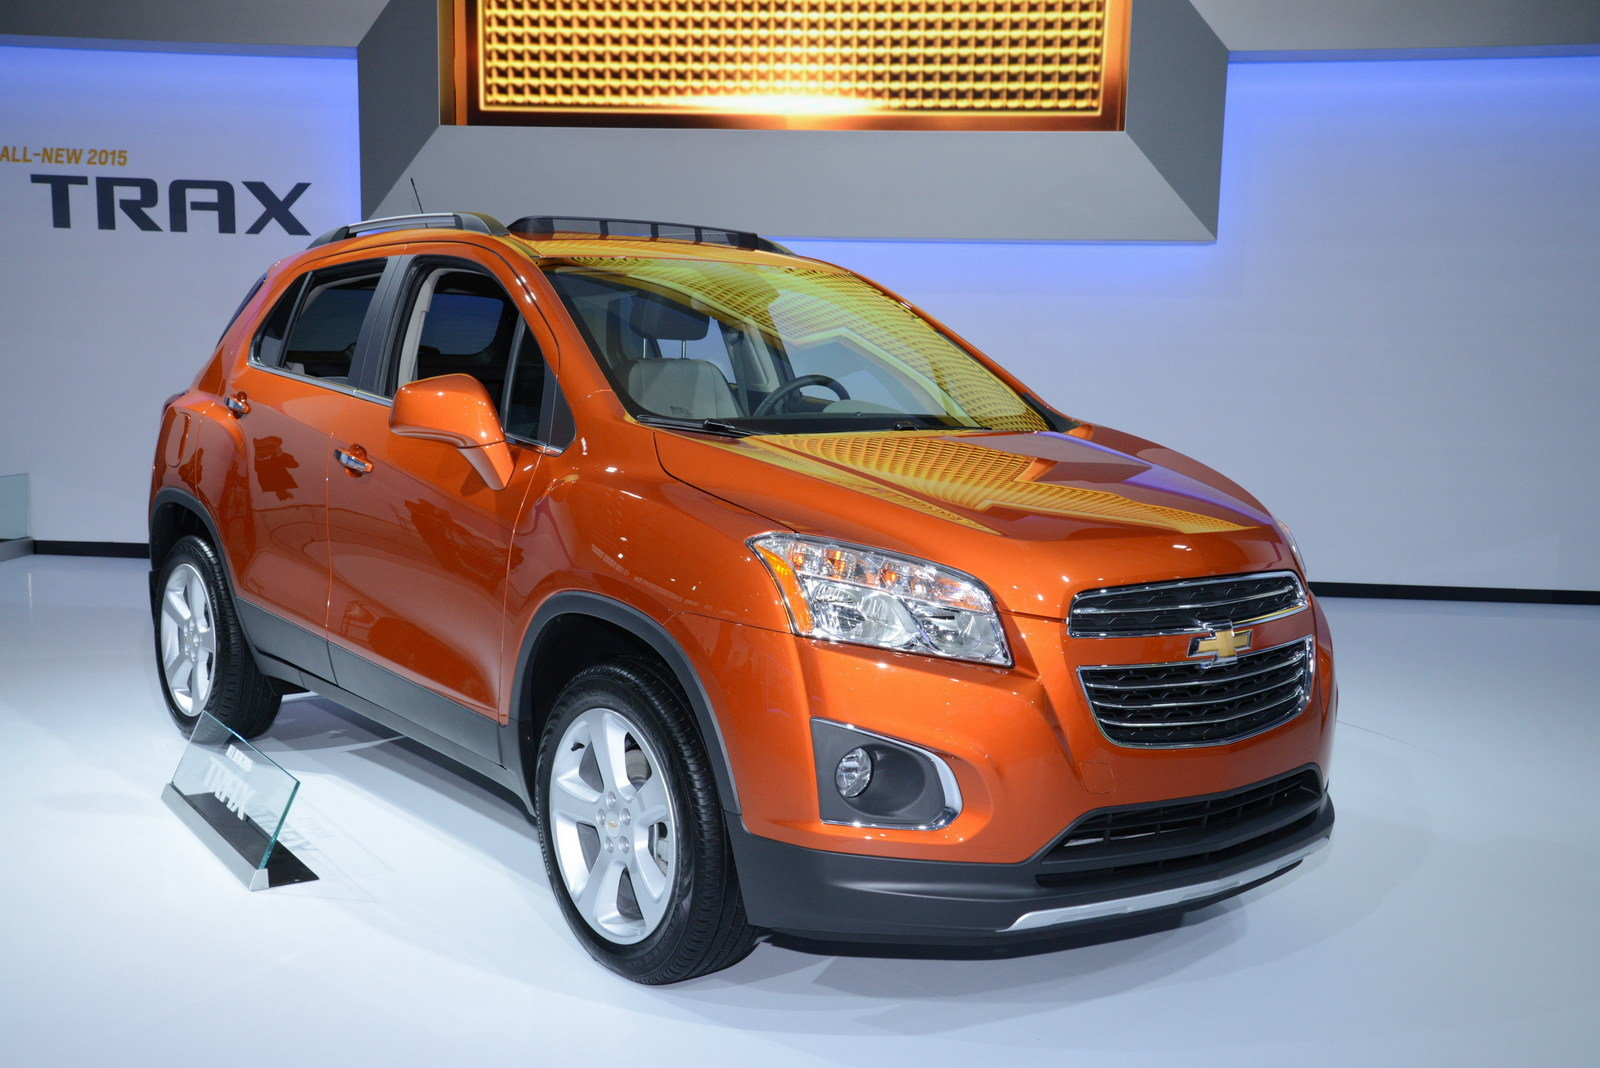 2015 Chevrolet Trax Review - Top Speed